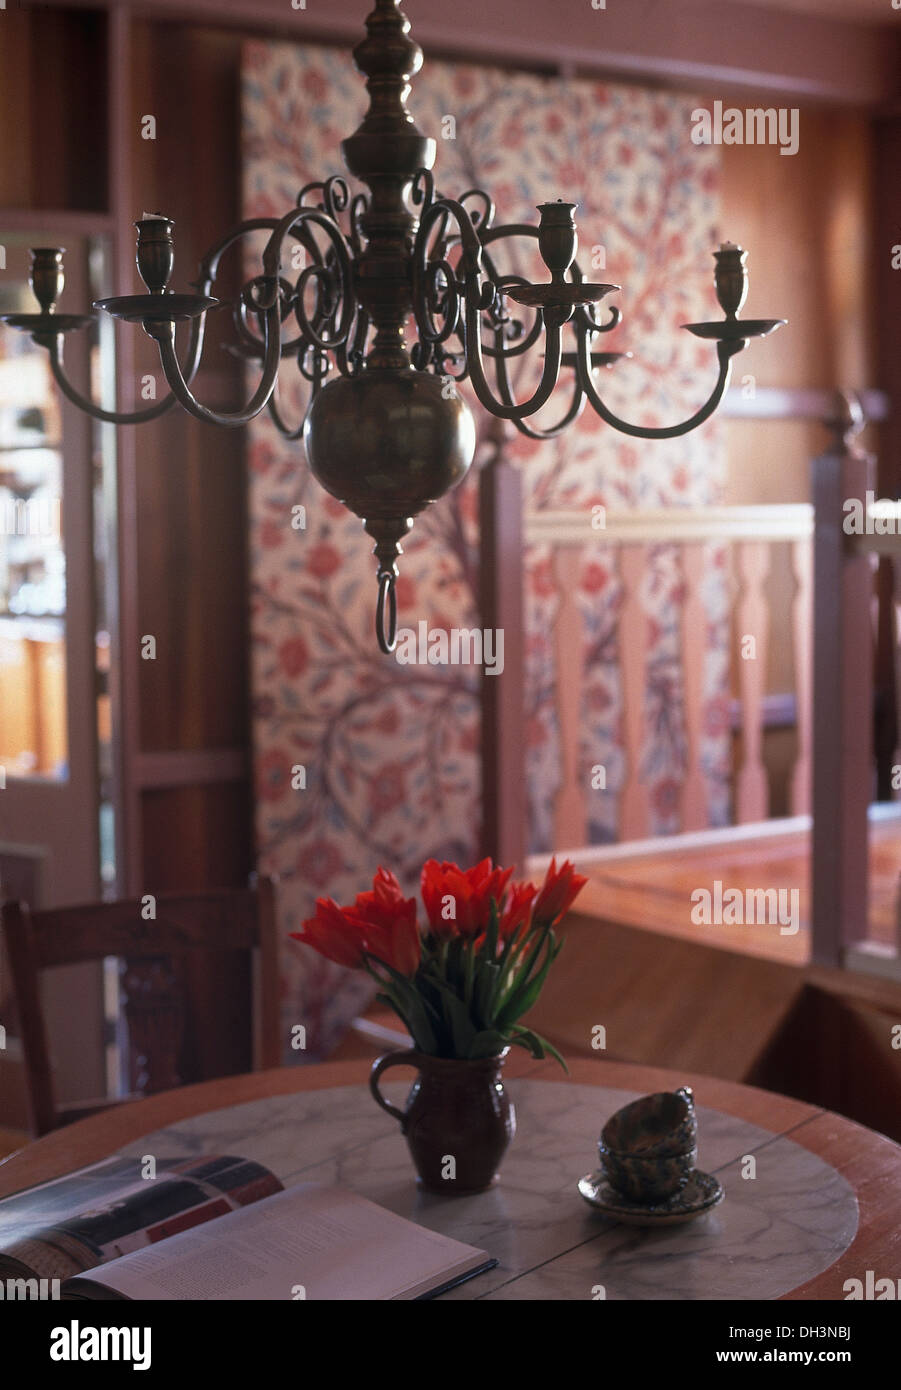 Strange Antique Brass Chandelier Above Table With Jug Of Red Tulips Download Free Architecture Designs Viewormadebymaigaardcom